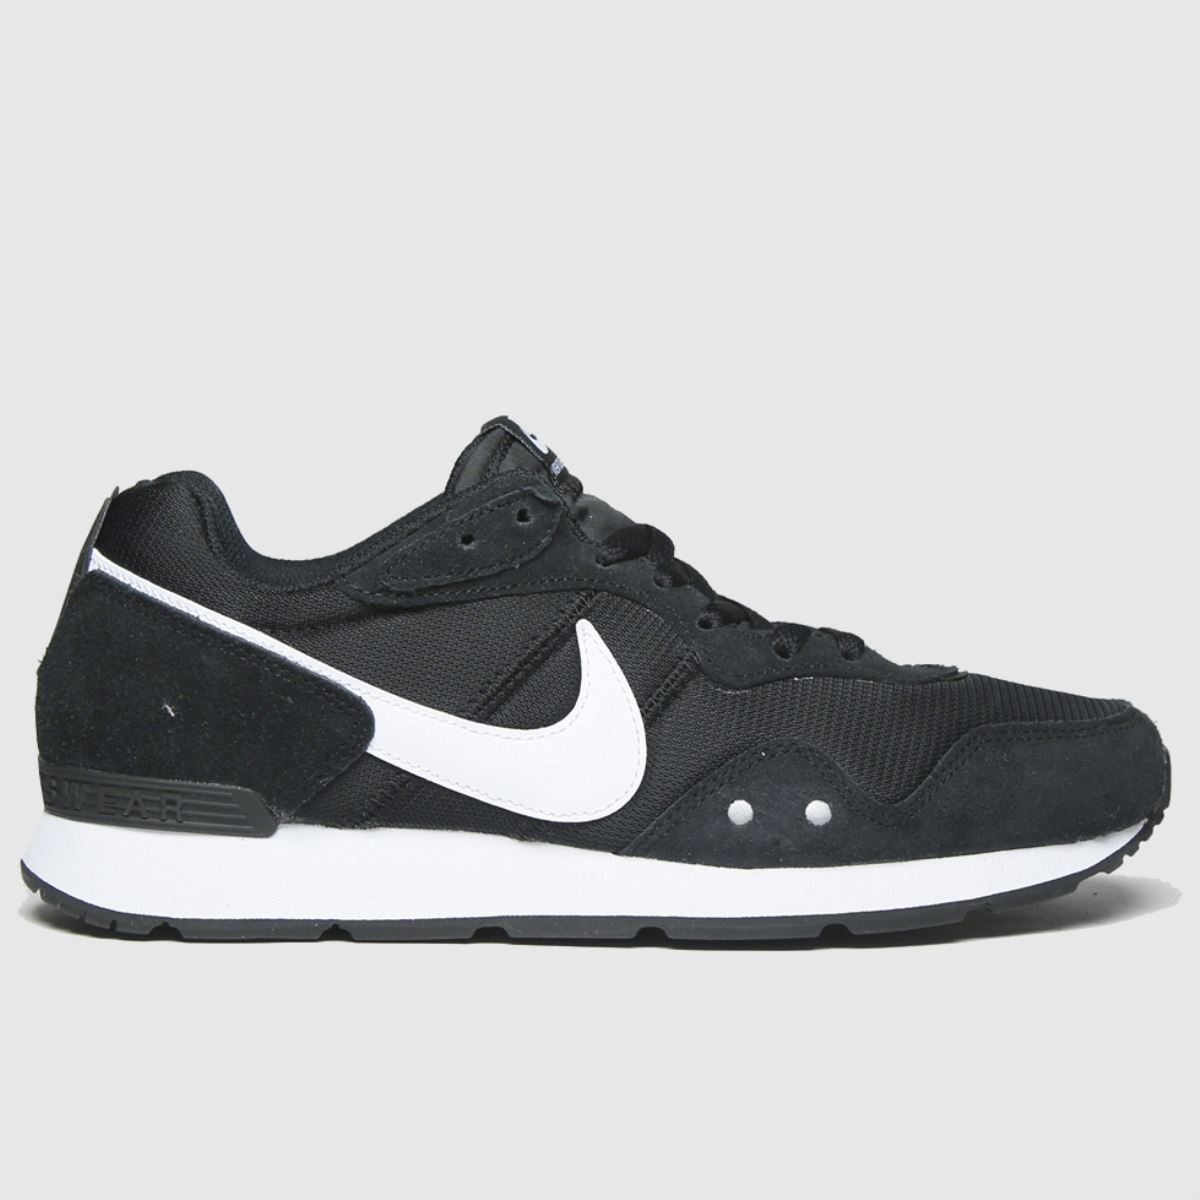 Nike Black & White Venture Runner Trainers